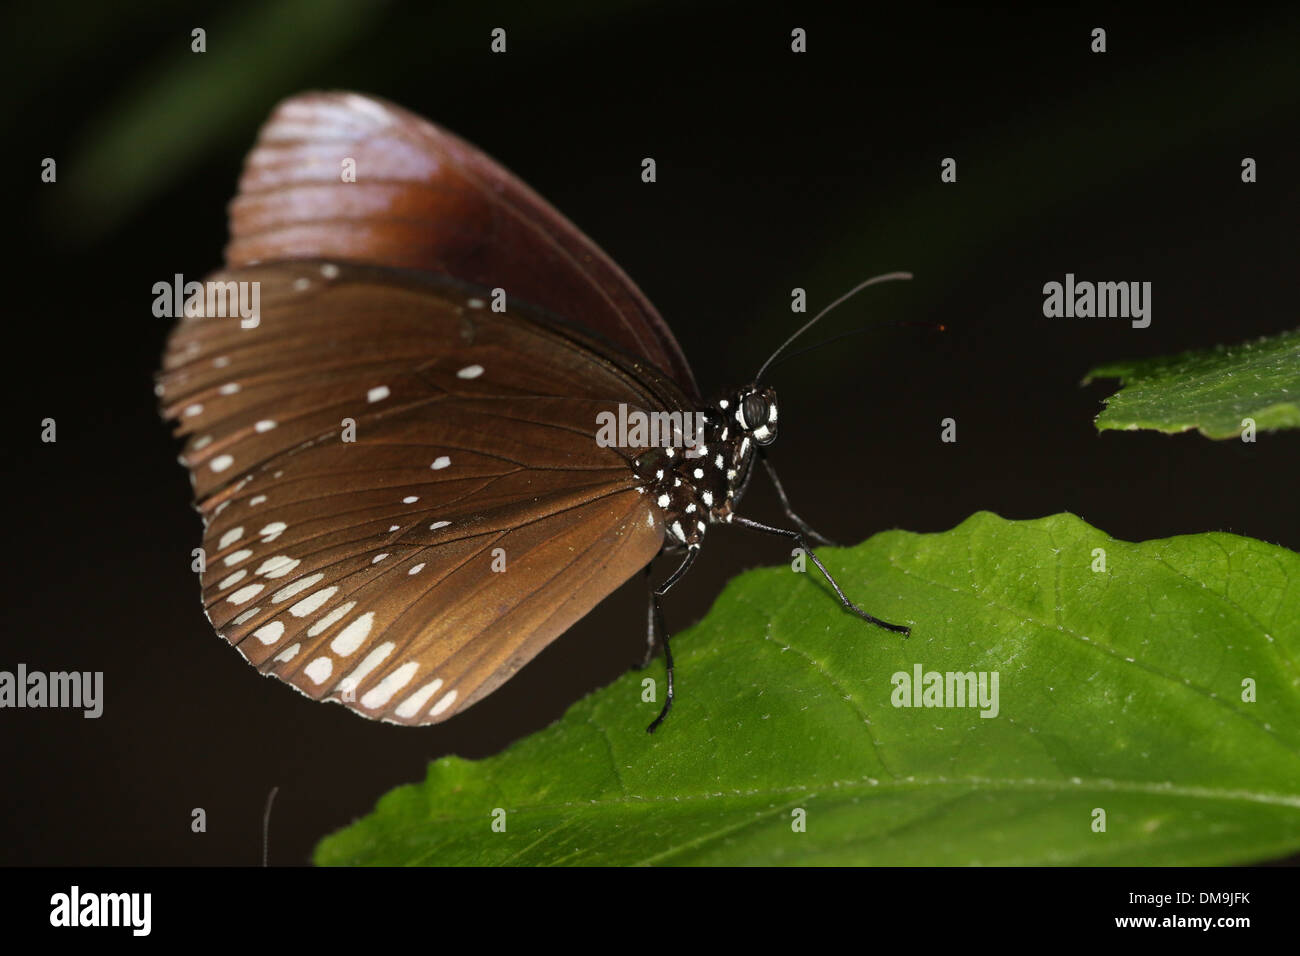 Common Crow butterfly a.k.a. Common Indian or Australian Crow ( Euploea core) - Stock Image